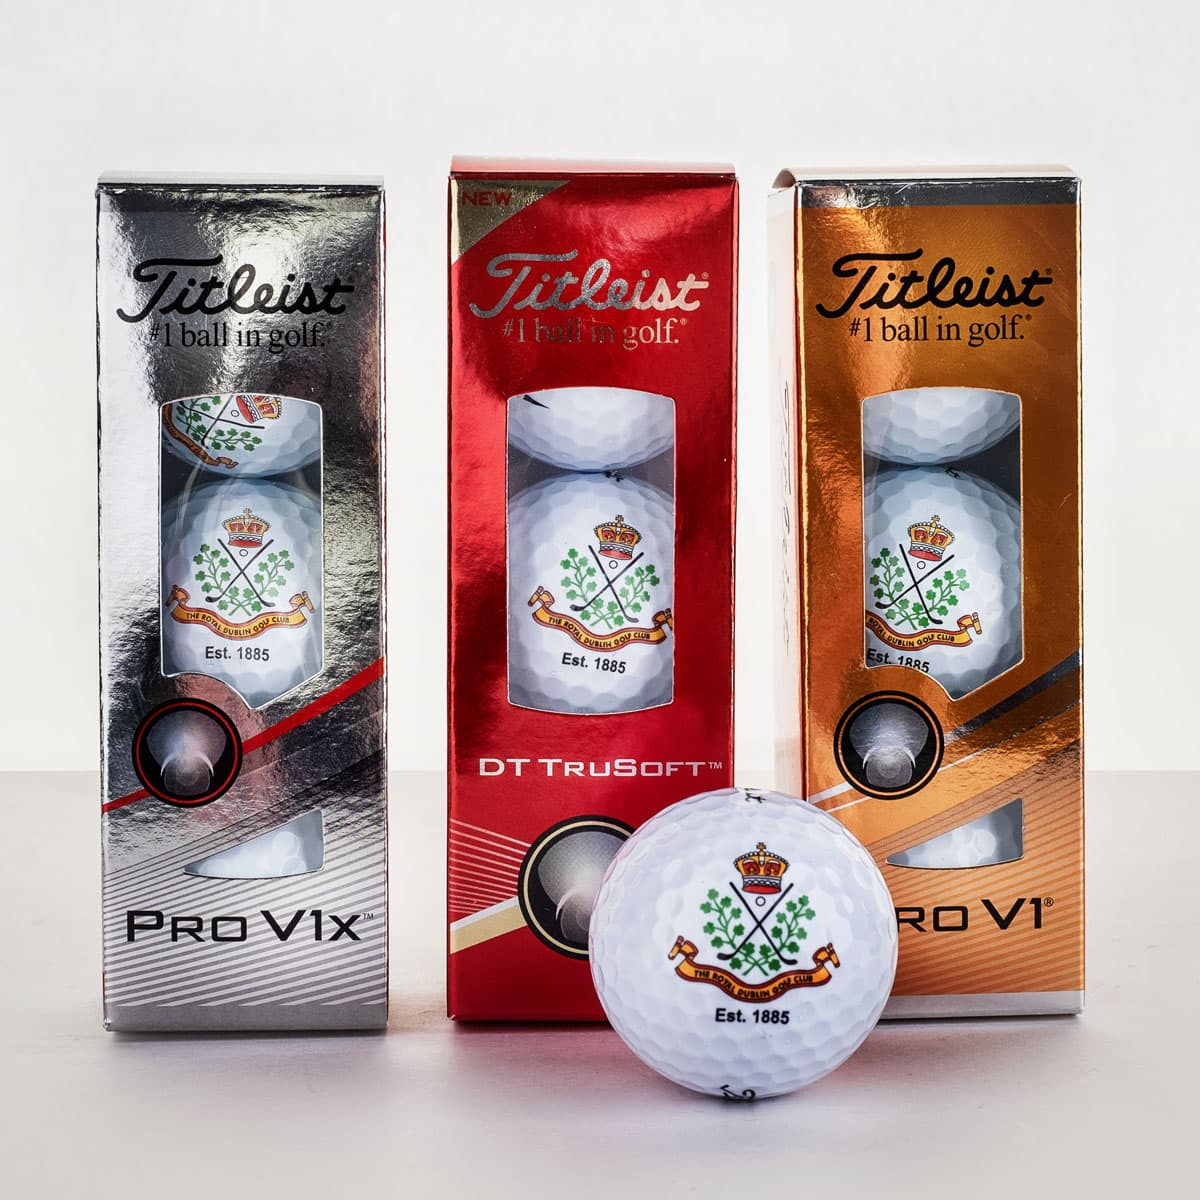 3 pack of ProV1s €19.95 (12 for €70) DT Trusoft €9.95 (12 for €30)